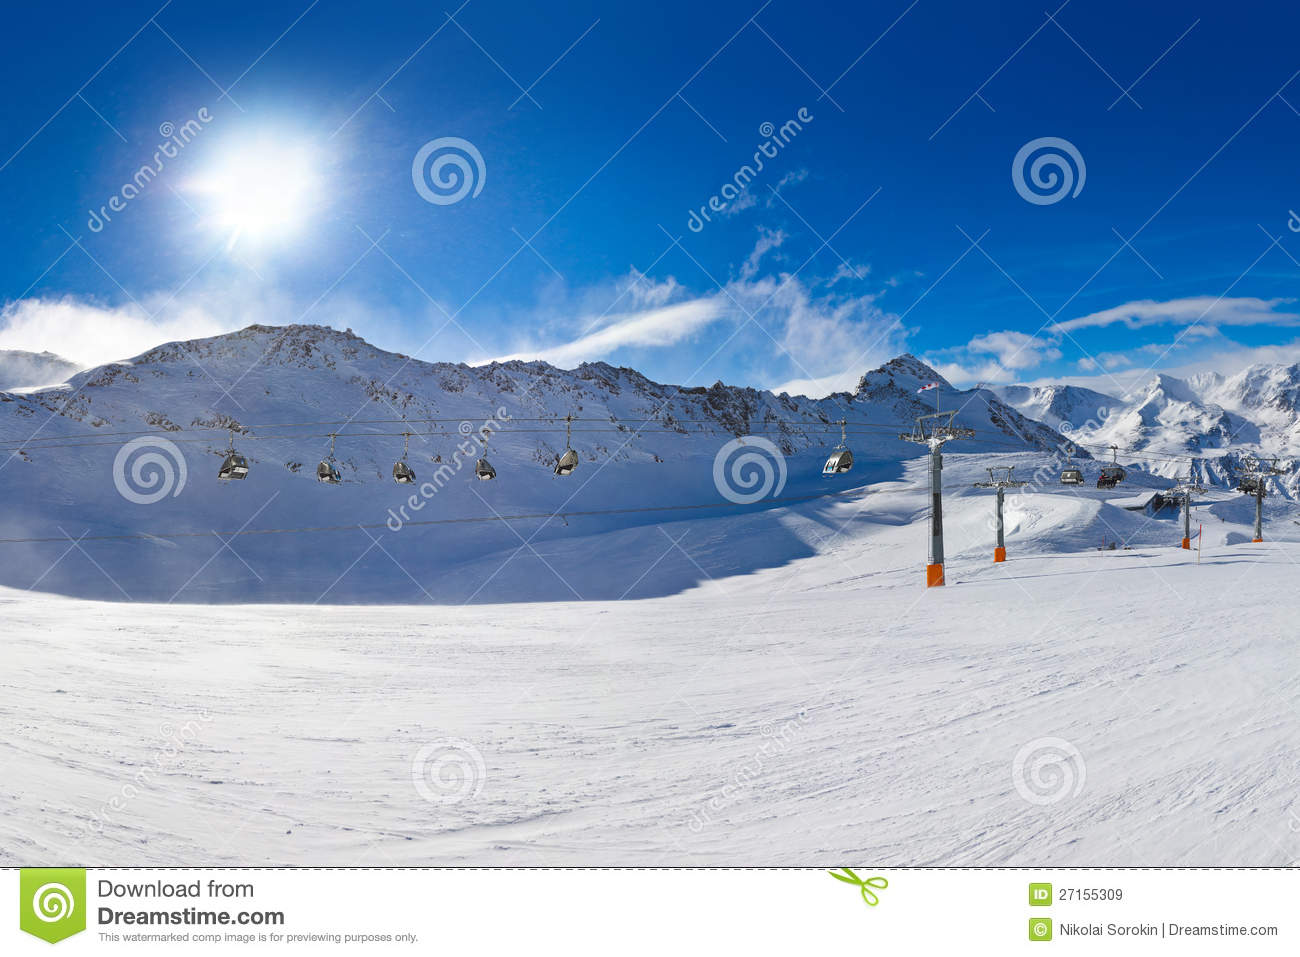 Hochgurgl Austria  city photos gallery : Mountain ski resort Hochgurgl Austria nature and sport background.